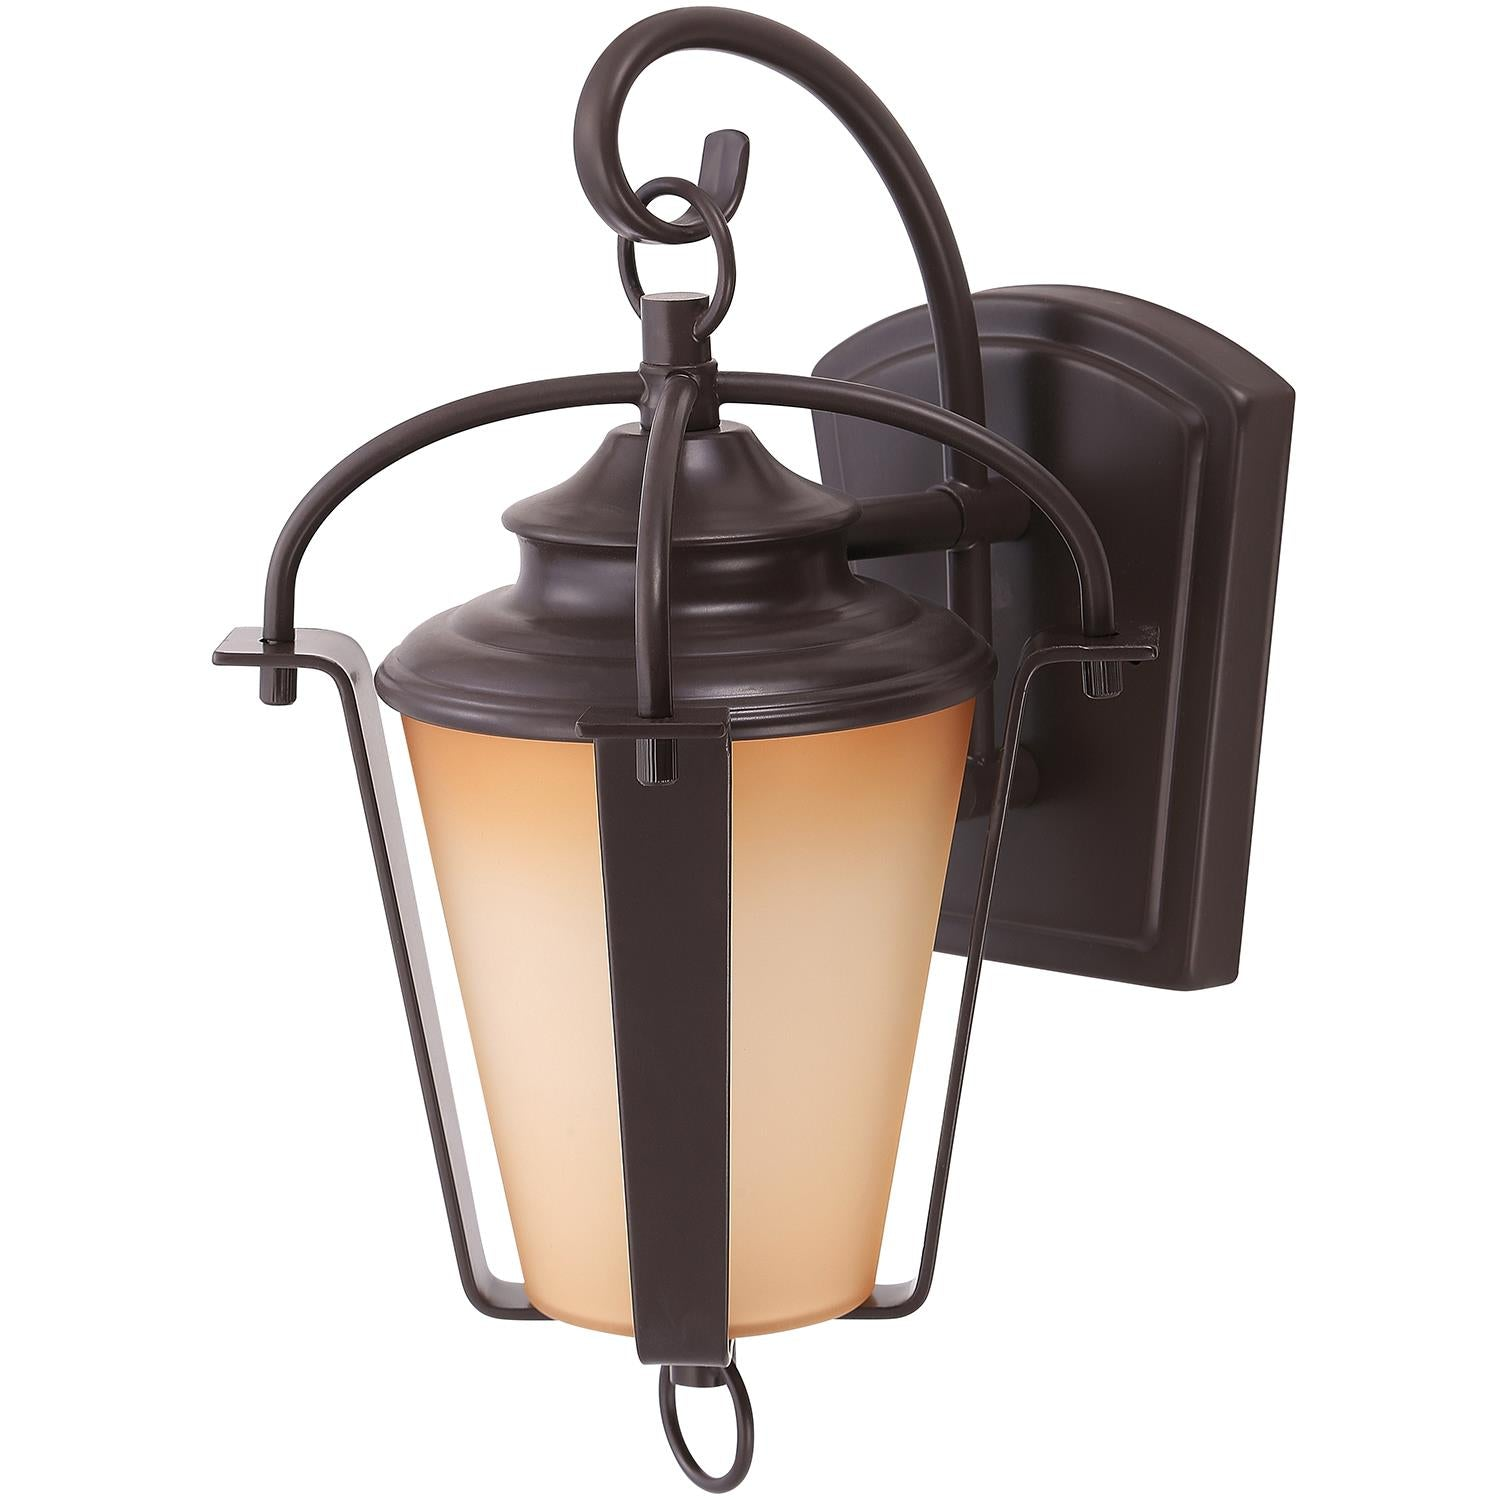 SUNLITE Outdoor Lantern Warm White 3000K 15W 120V